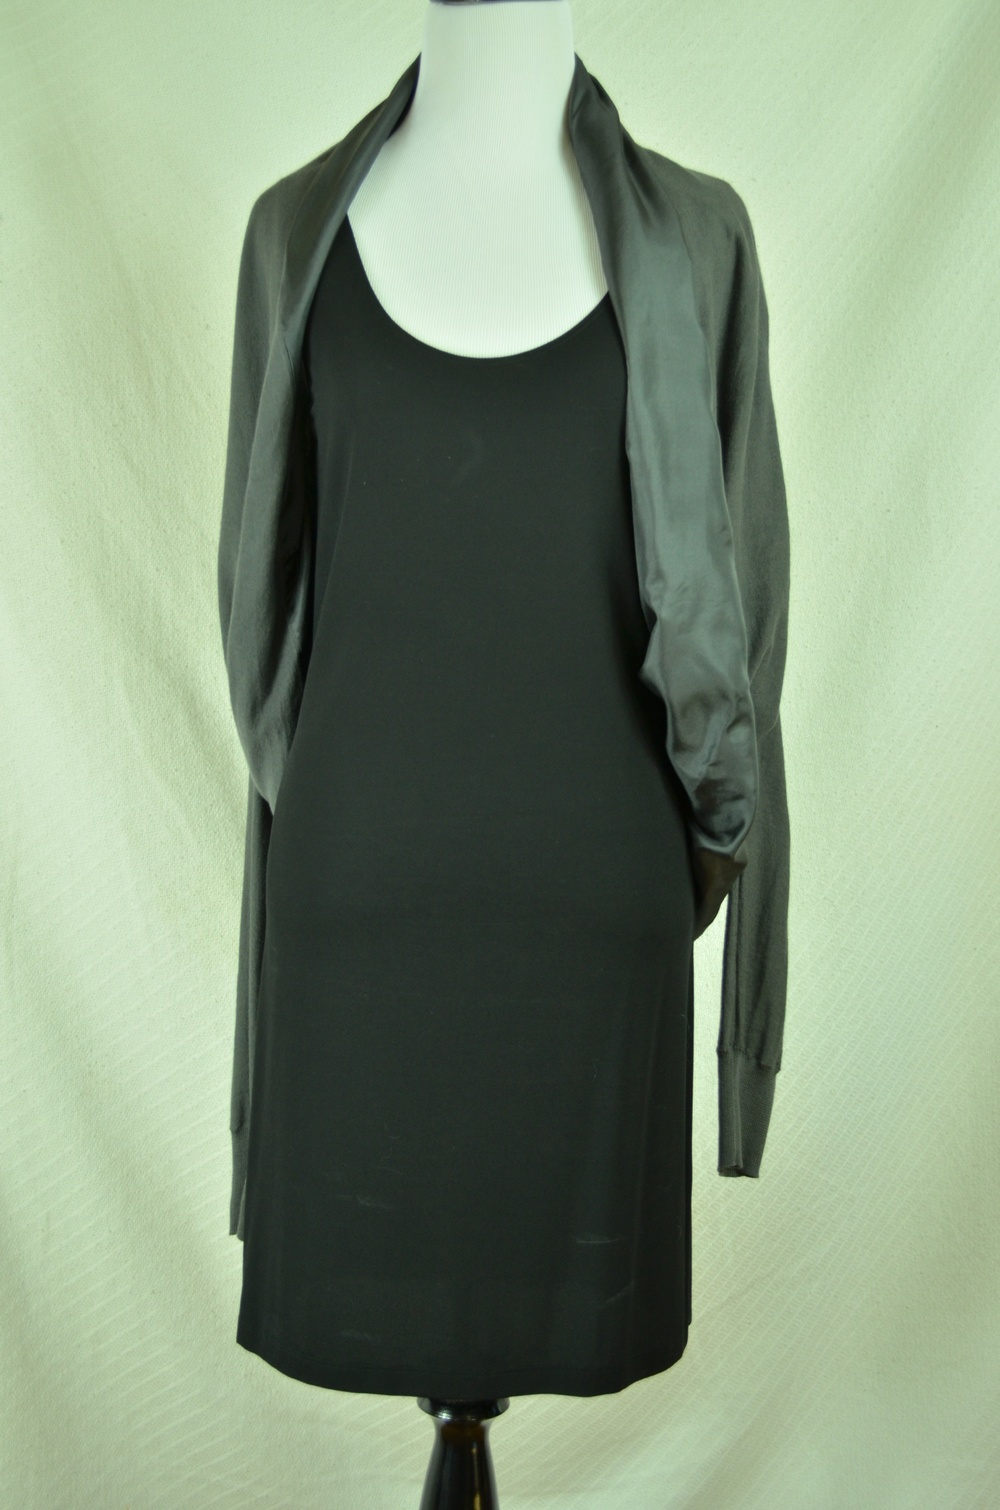 40. DKNY Pure Silk/Cotton Shrug